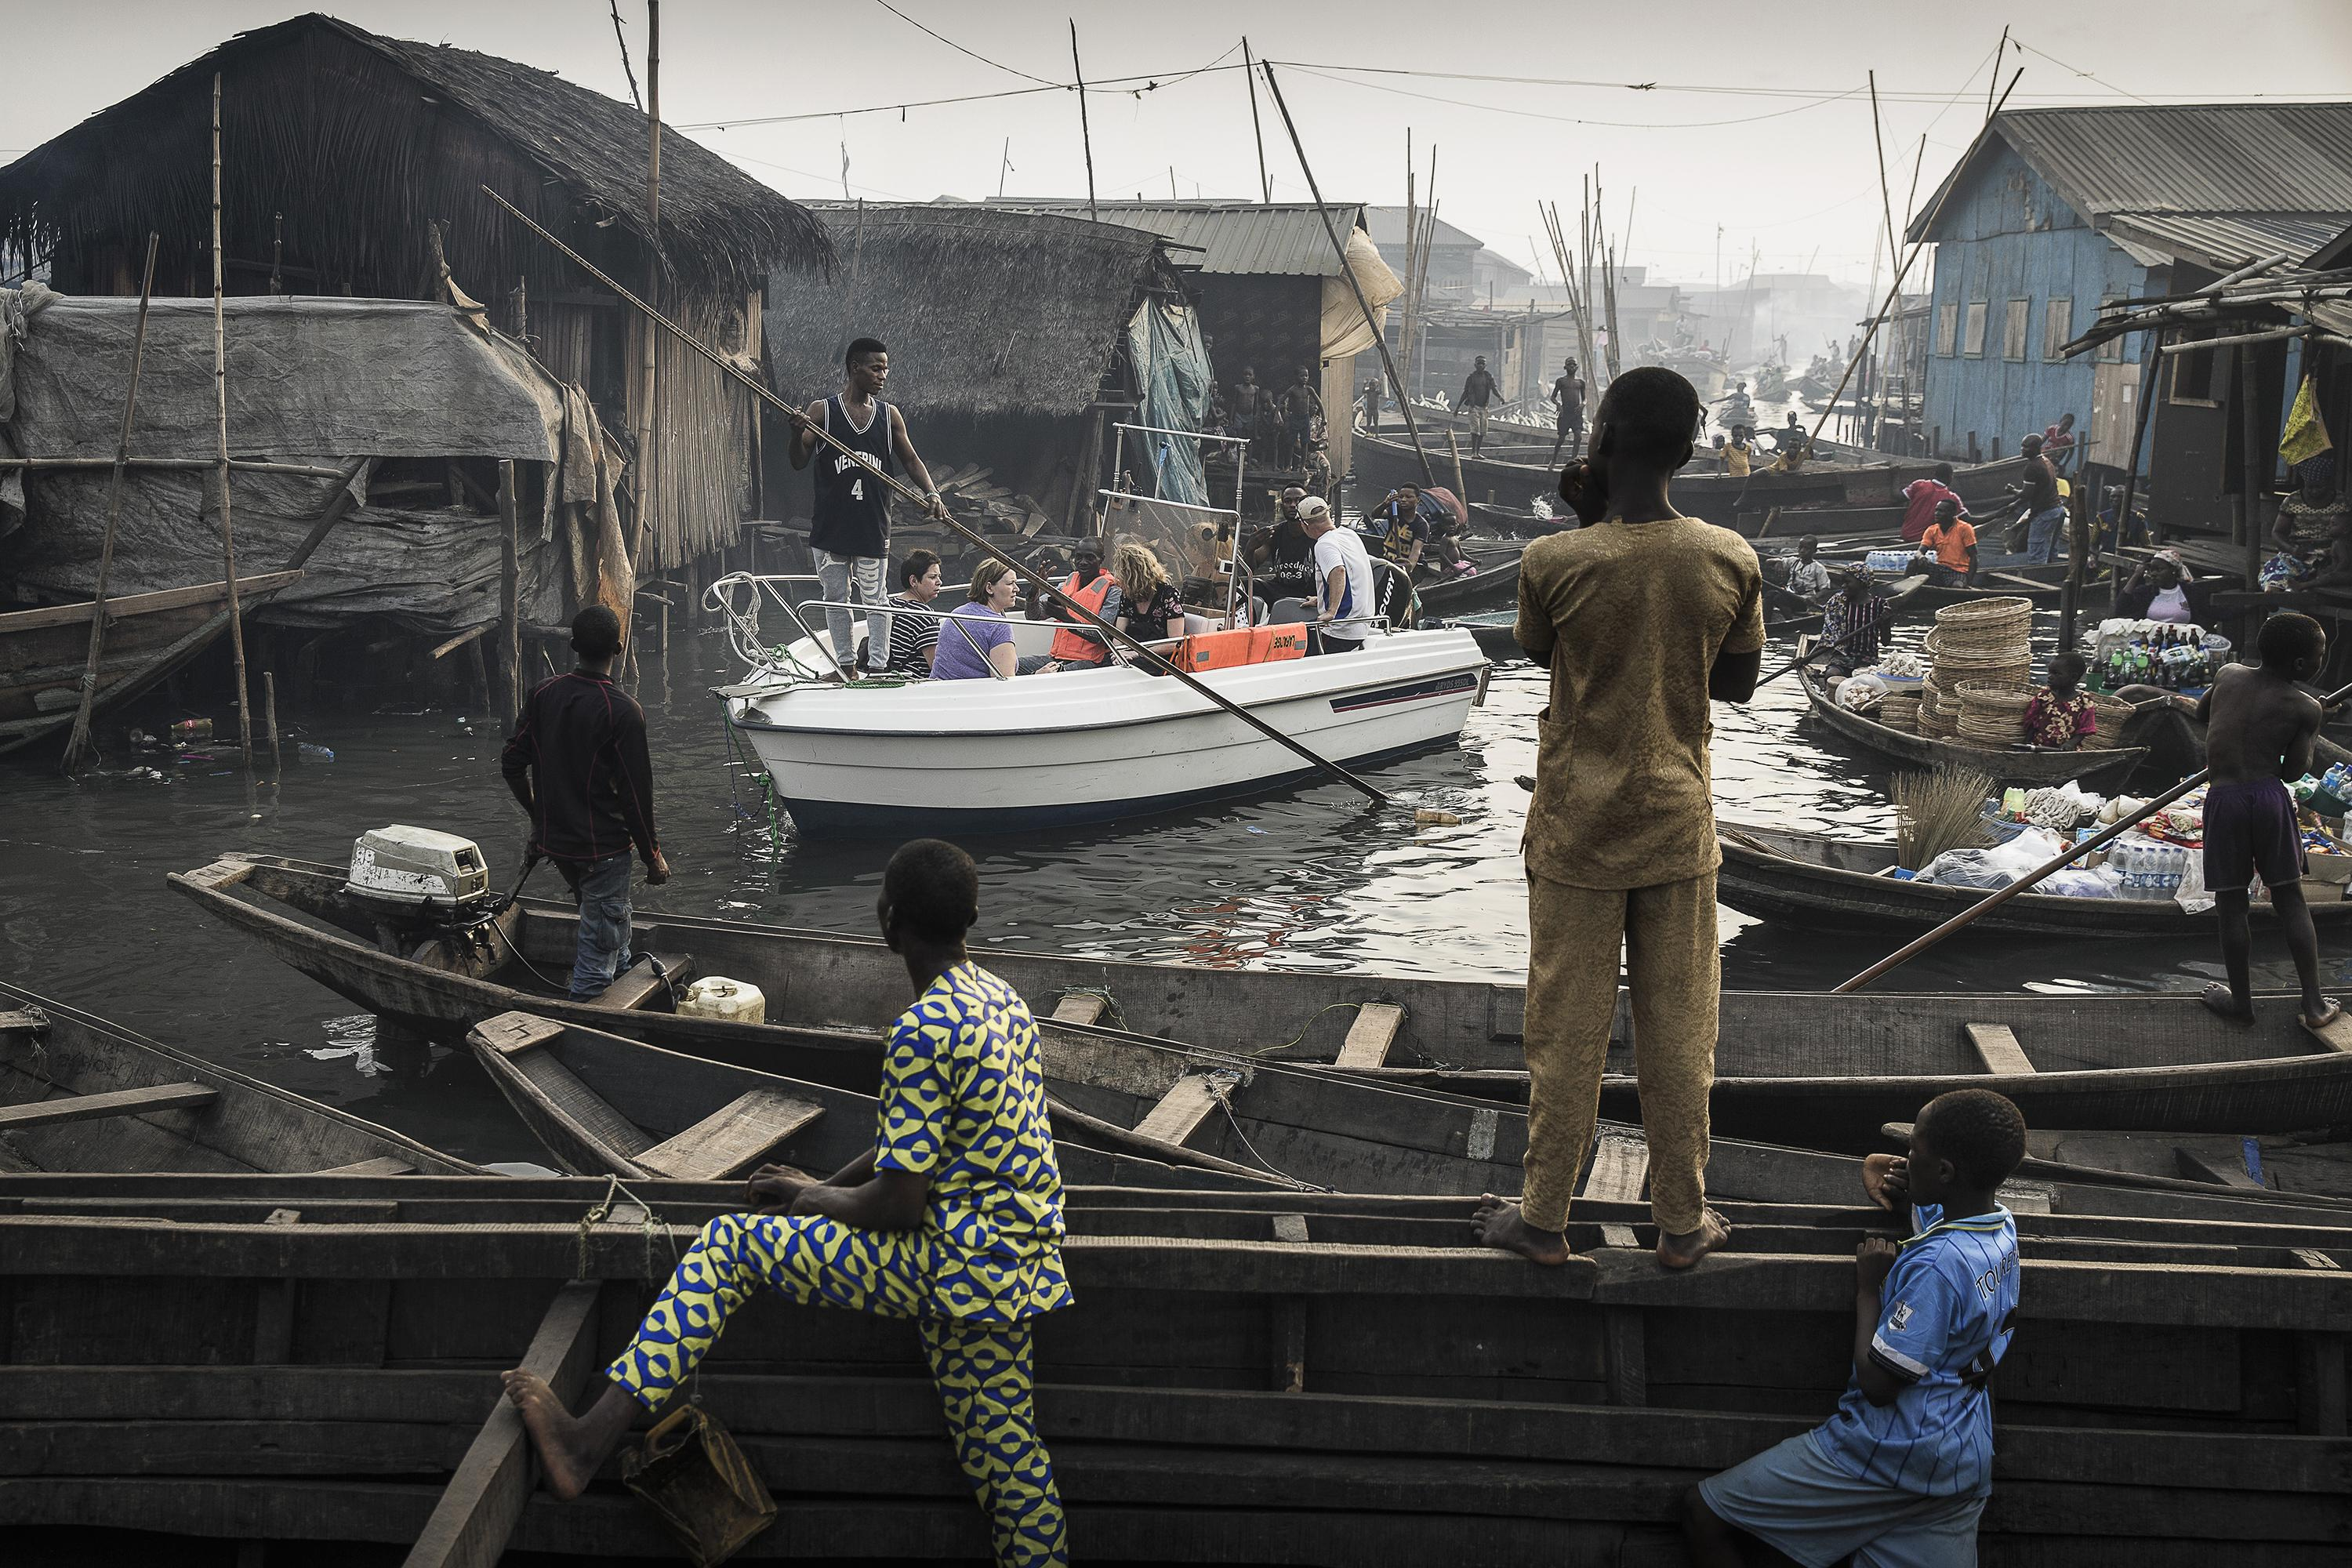 <p>Lagos waterfronts under threat: A boat with expats from Lagos Marina is steered through the canals of Makoko community — an ancient fishing village that has grown into an enormous informal settlement — on the shores of Lagos Lagoon, Lagos, Nigeria, Feb. 24, 2017.<br>Makoko has a population of around 150,000 people, many of whose families have been there for generations. But Lagos is growing rapidly, and ground to build on is in high demand. Prime real estate along the lagoon waterfront is scarce, and there are moves to demolish communities such as Makoko and build apartment blocks: accommodation for the wealthy. Because the government considers the communities to be informal settlements, people may be evicted without provision of more housing. Displacement from the waterfront also deprives them of their livelihoods. The government denies that the settlements have been inhabited for generations and has given various reasons for evictions, including saying that the communities are hideouts for criminals. Court rulings against the government in 2017 declared the evictions unconstitutional and that residents should be compensated and rehoused, but the issue remains unresolved. (Photo: Jesco Denzel) </p>